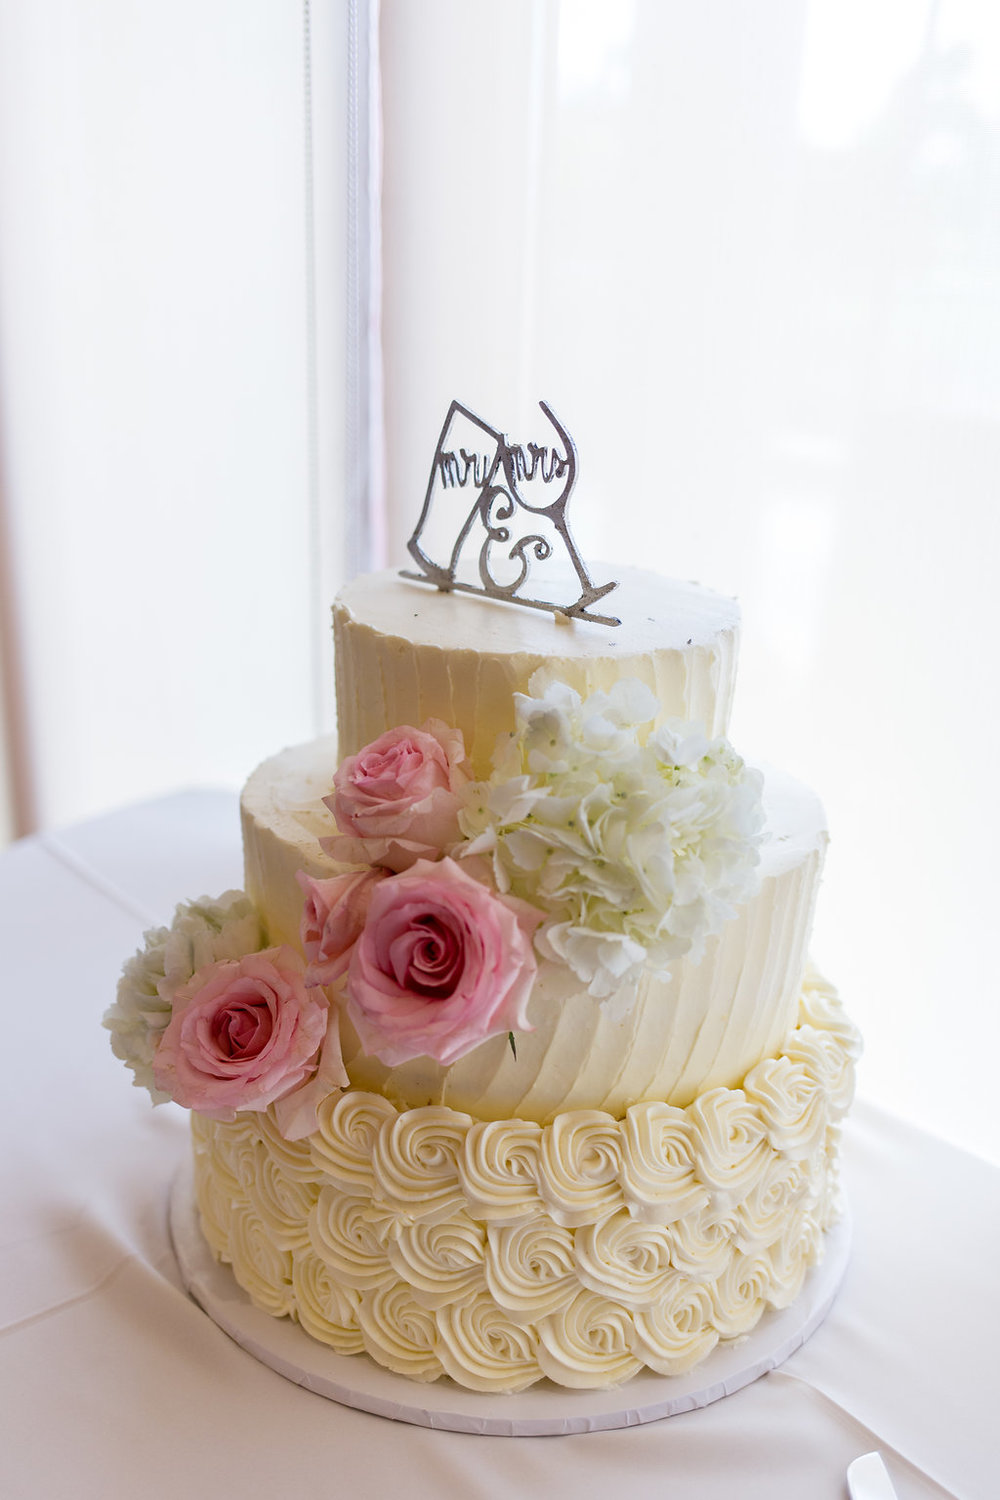 Simple White Wedding Cakes - Gorgeous Seal Beach Wedding Venue - Old Country Club Wedding